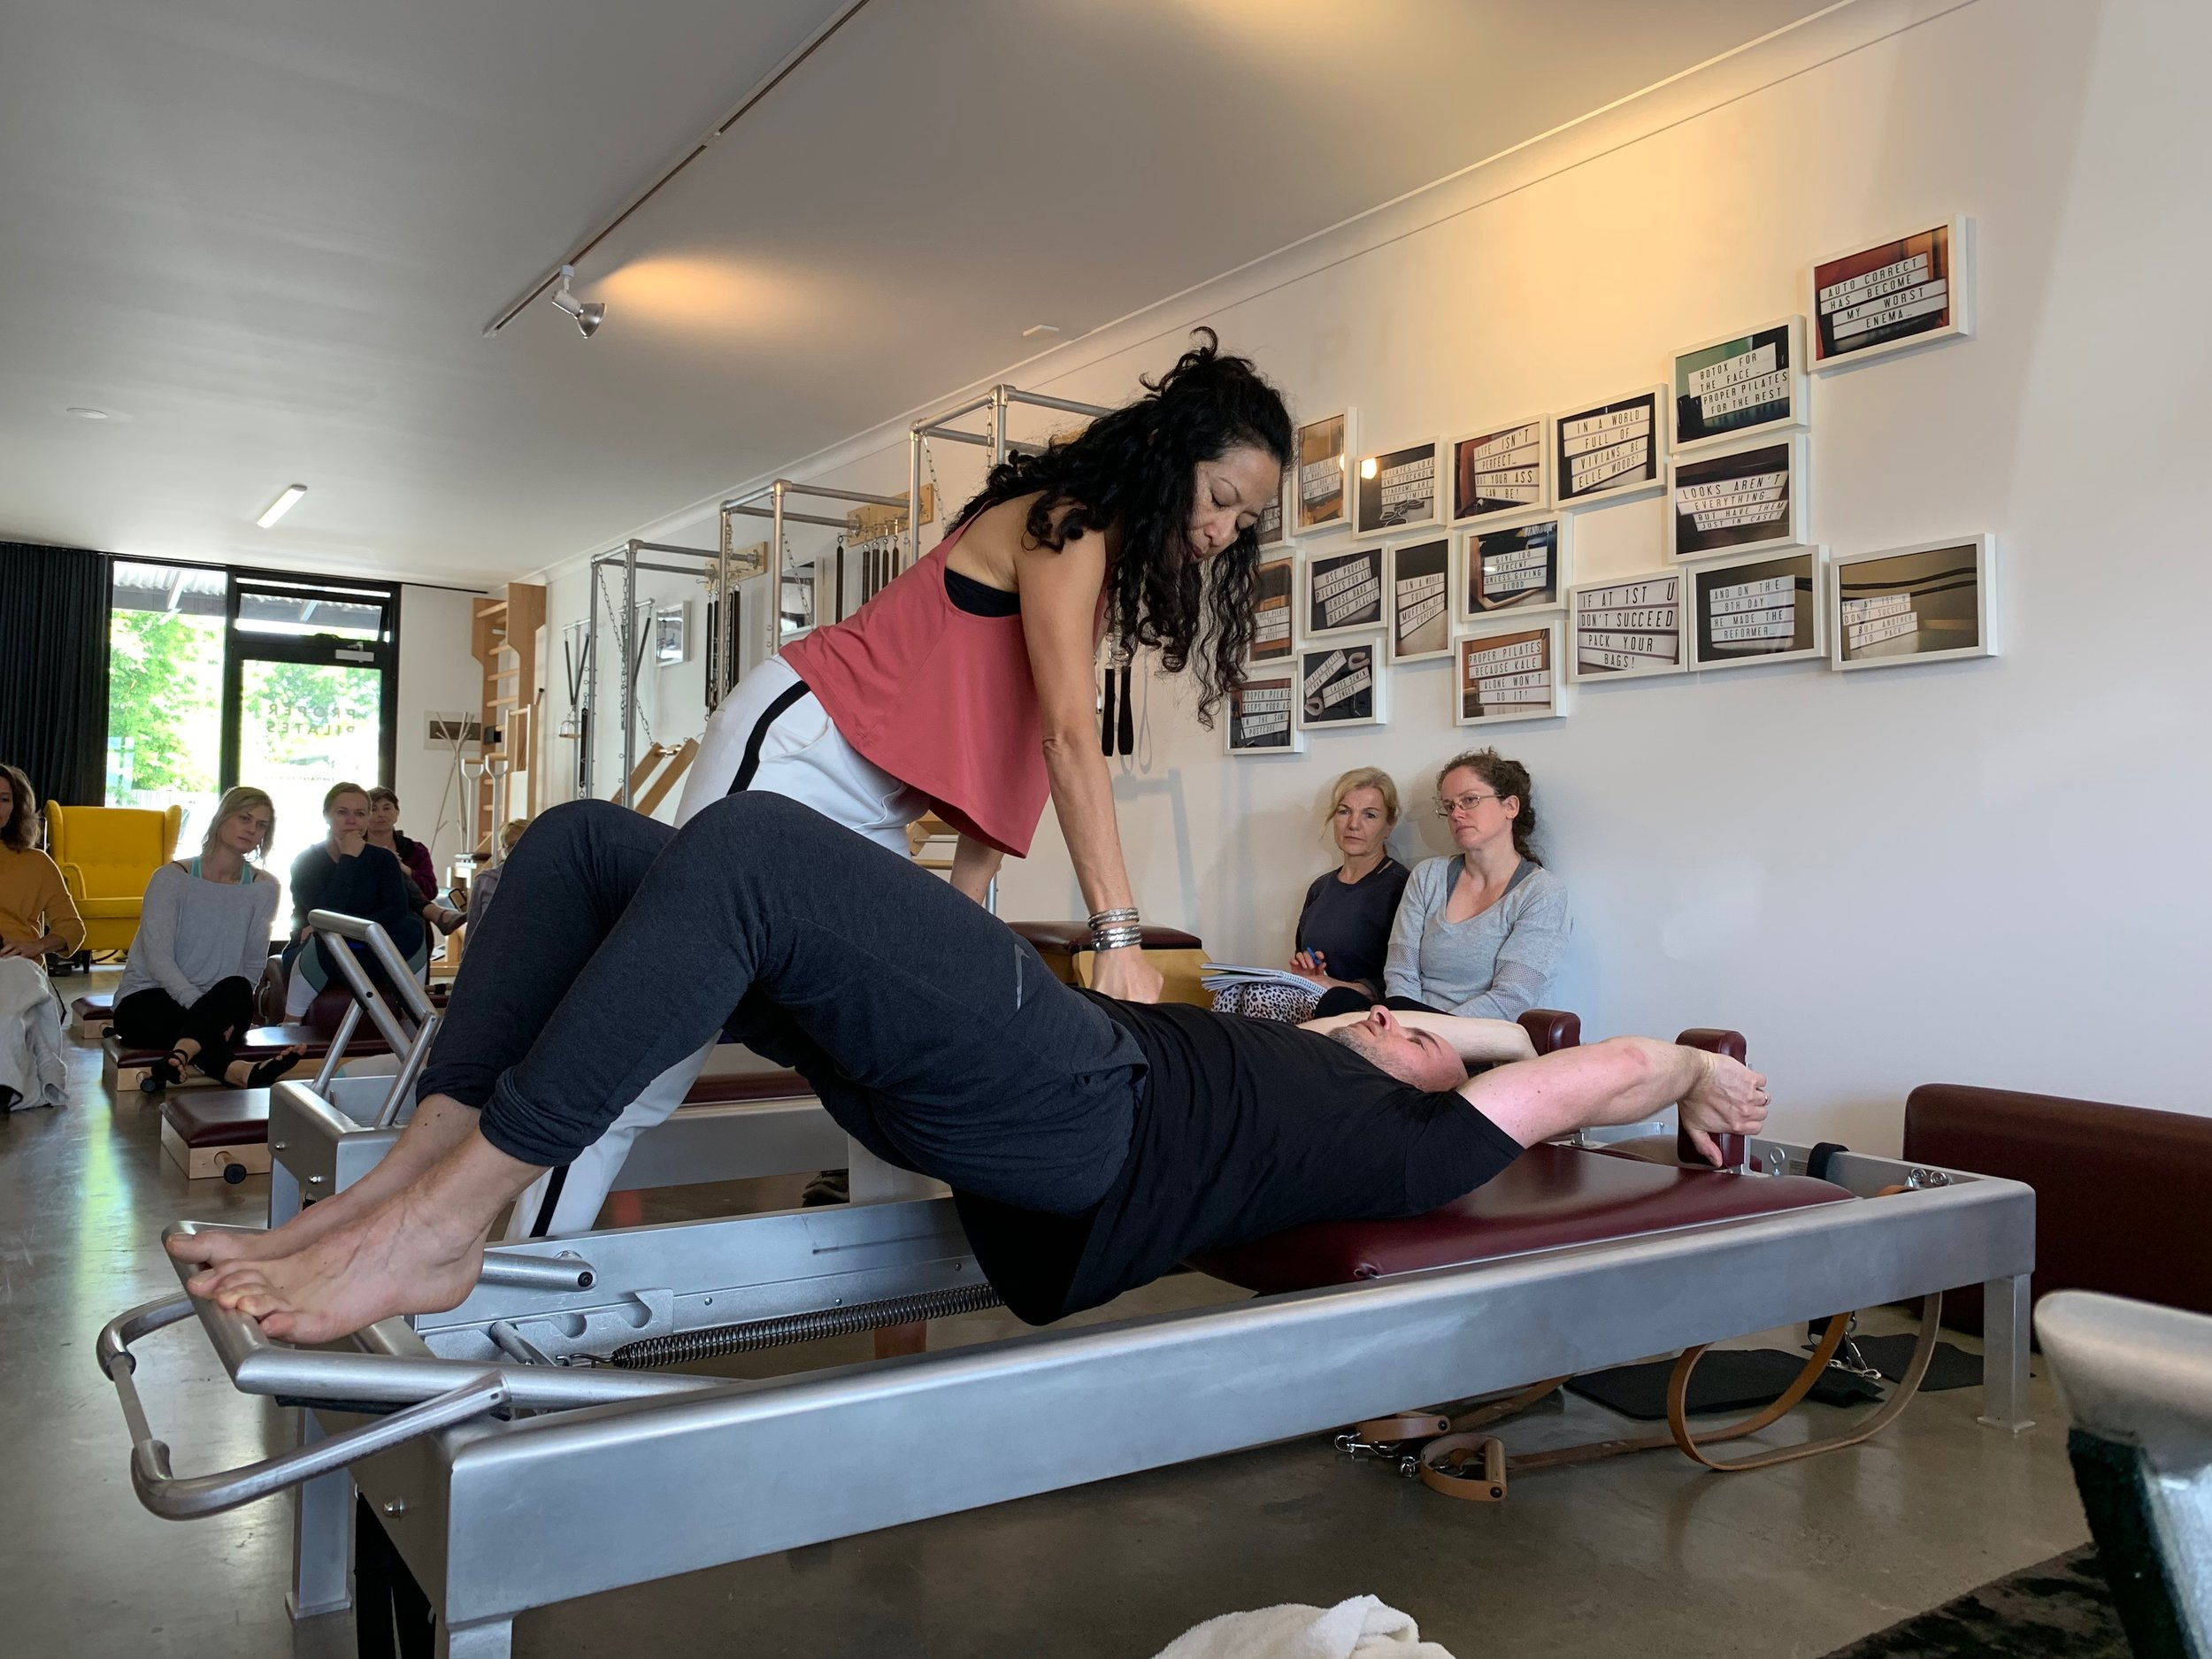 Sandy Shimoda (USA) getting right to the heart of things at Proper Pilates 2018